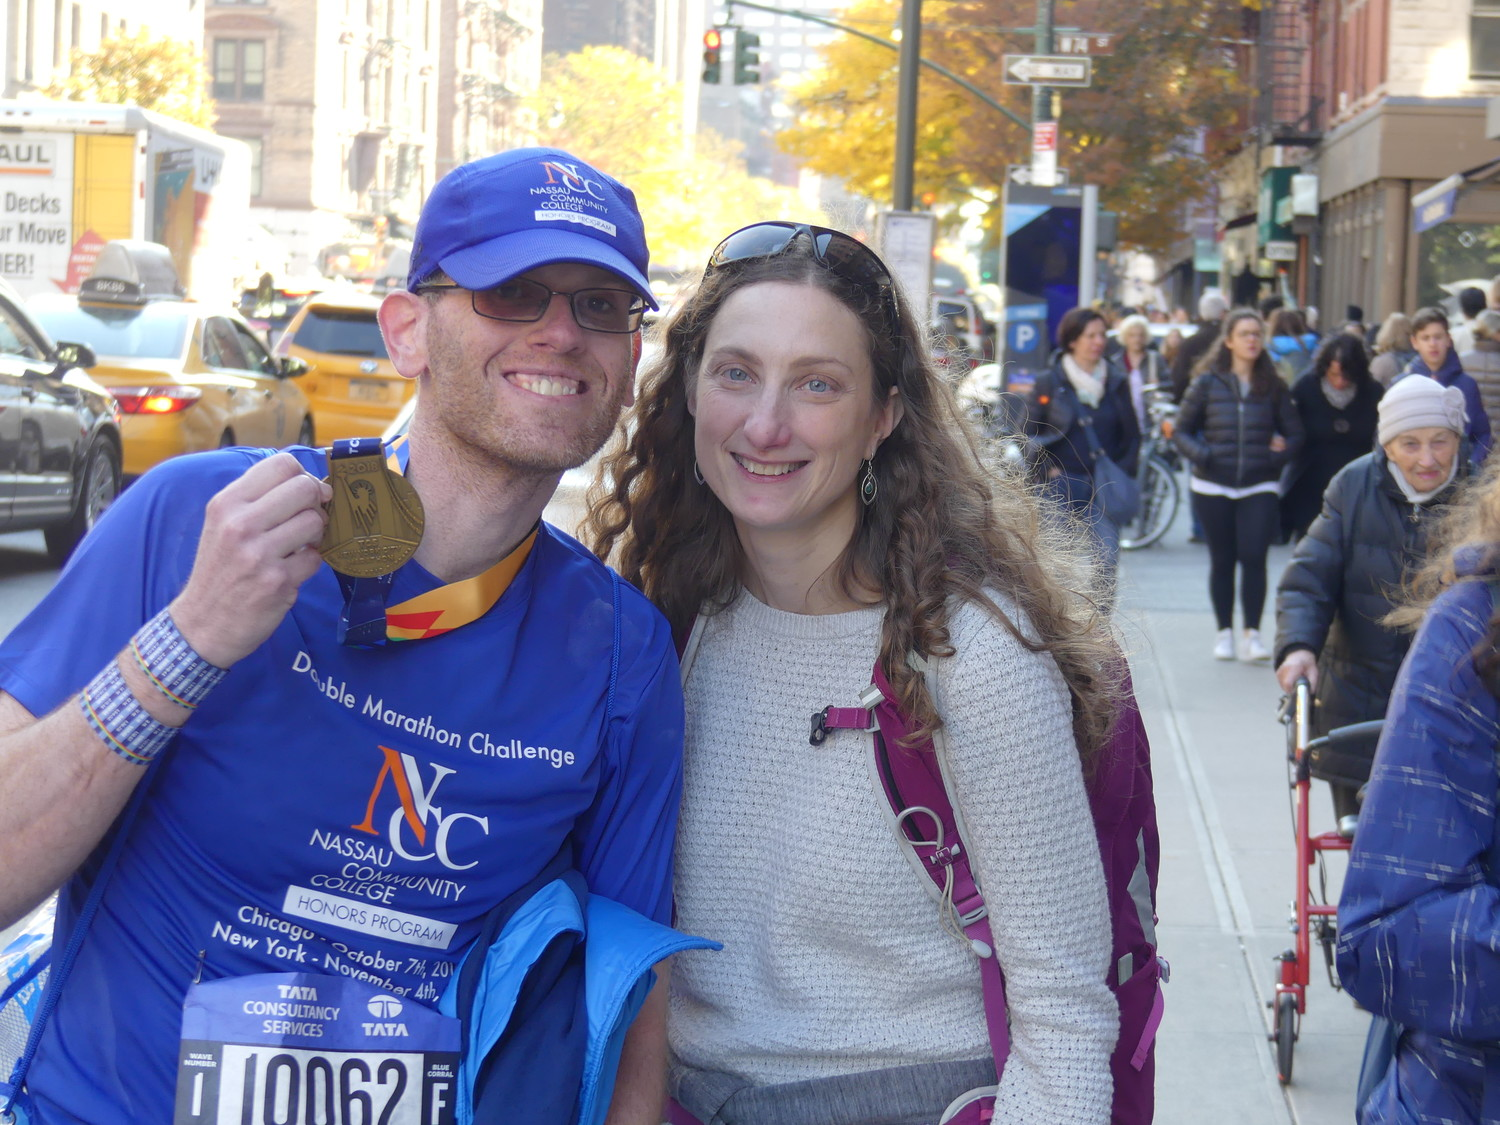 Richard Cohen, with his wife, Stacey Schwarcz, proudly flashed the medal he received for completing the TCS New York City Marathon to raise funds for scholarships for his students at Nassau Community College.